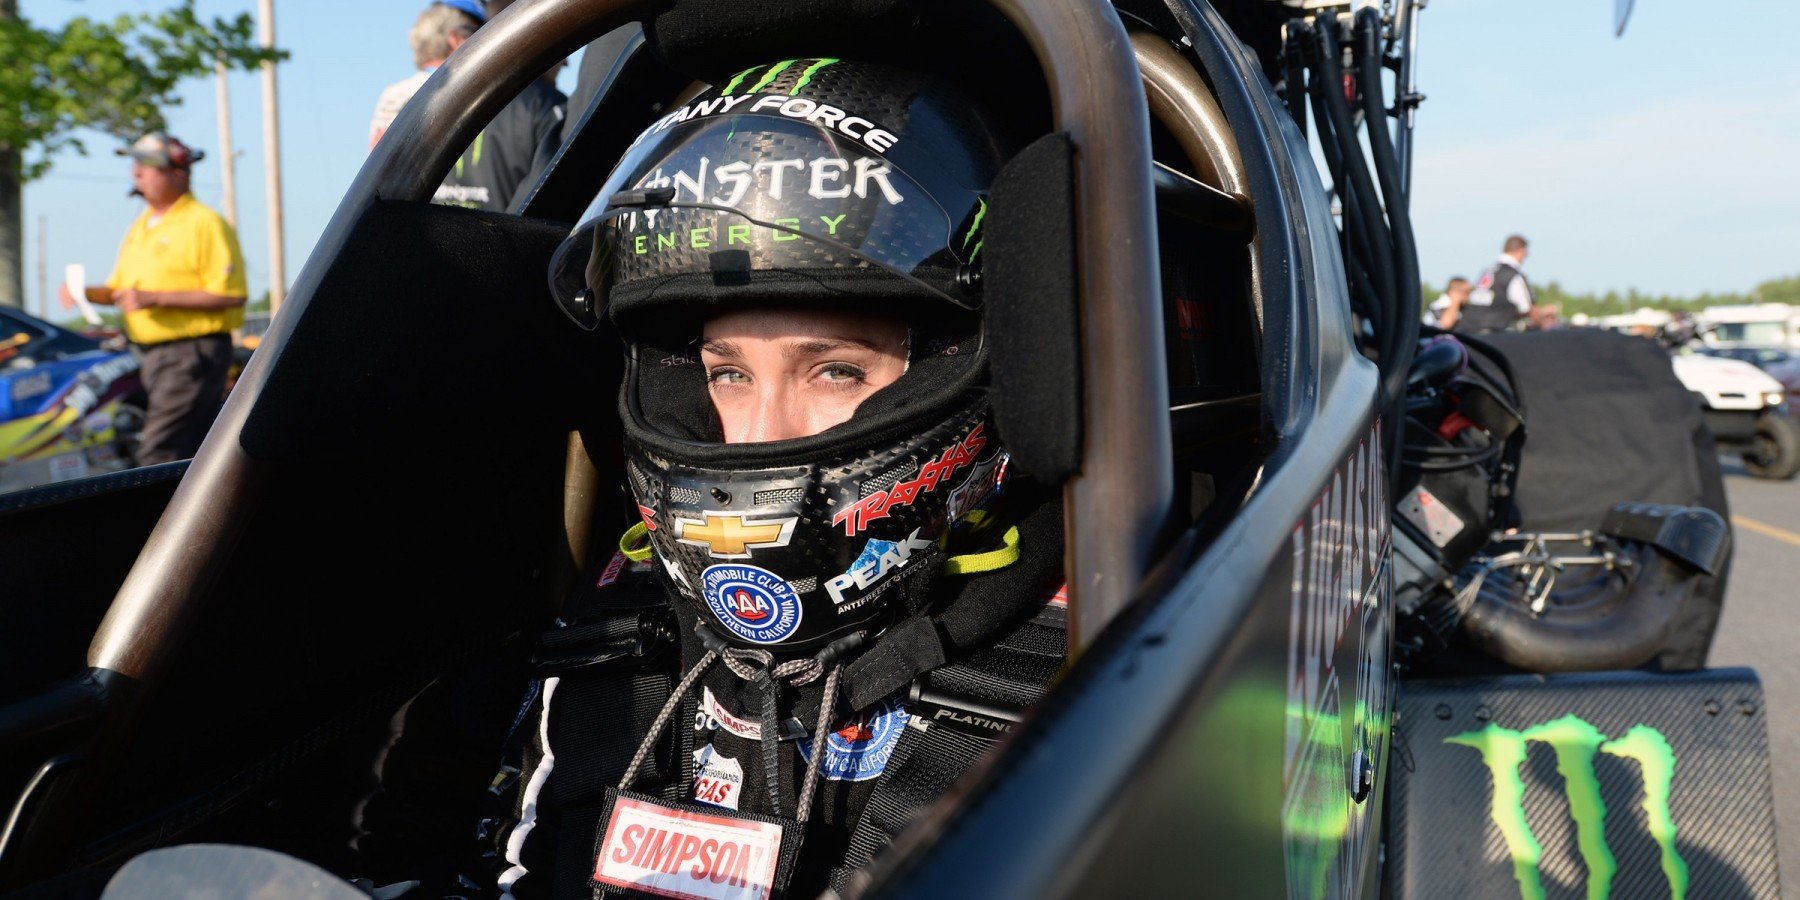 Monster racer Brittany Force competes in the 2016 NHRA season in Epping, New Hampshire.